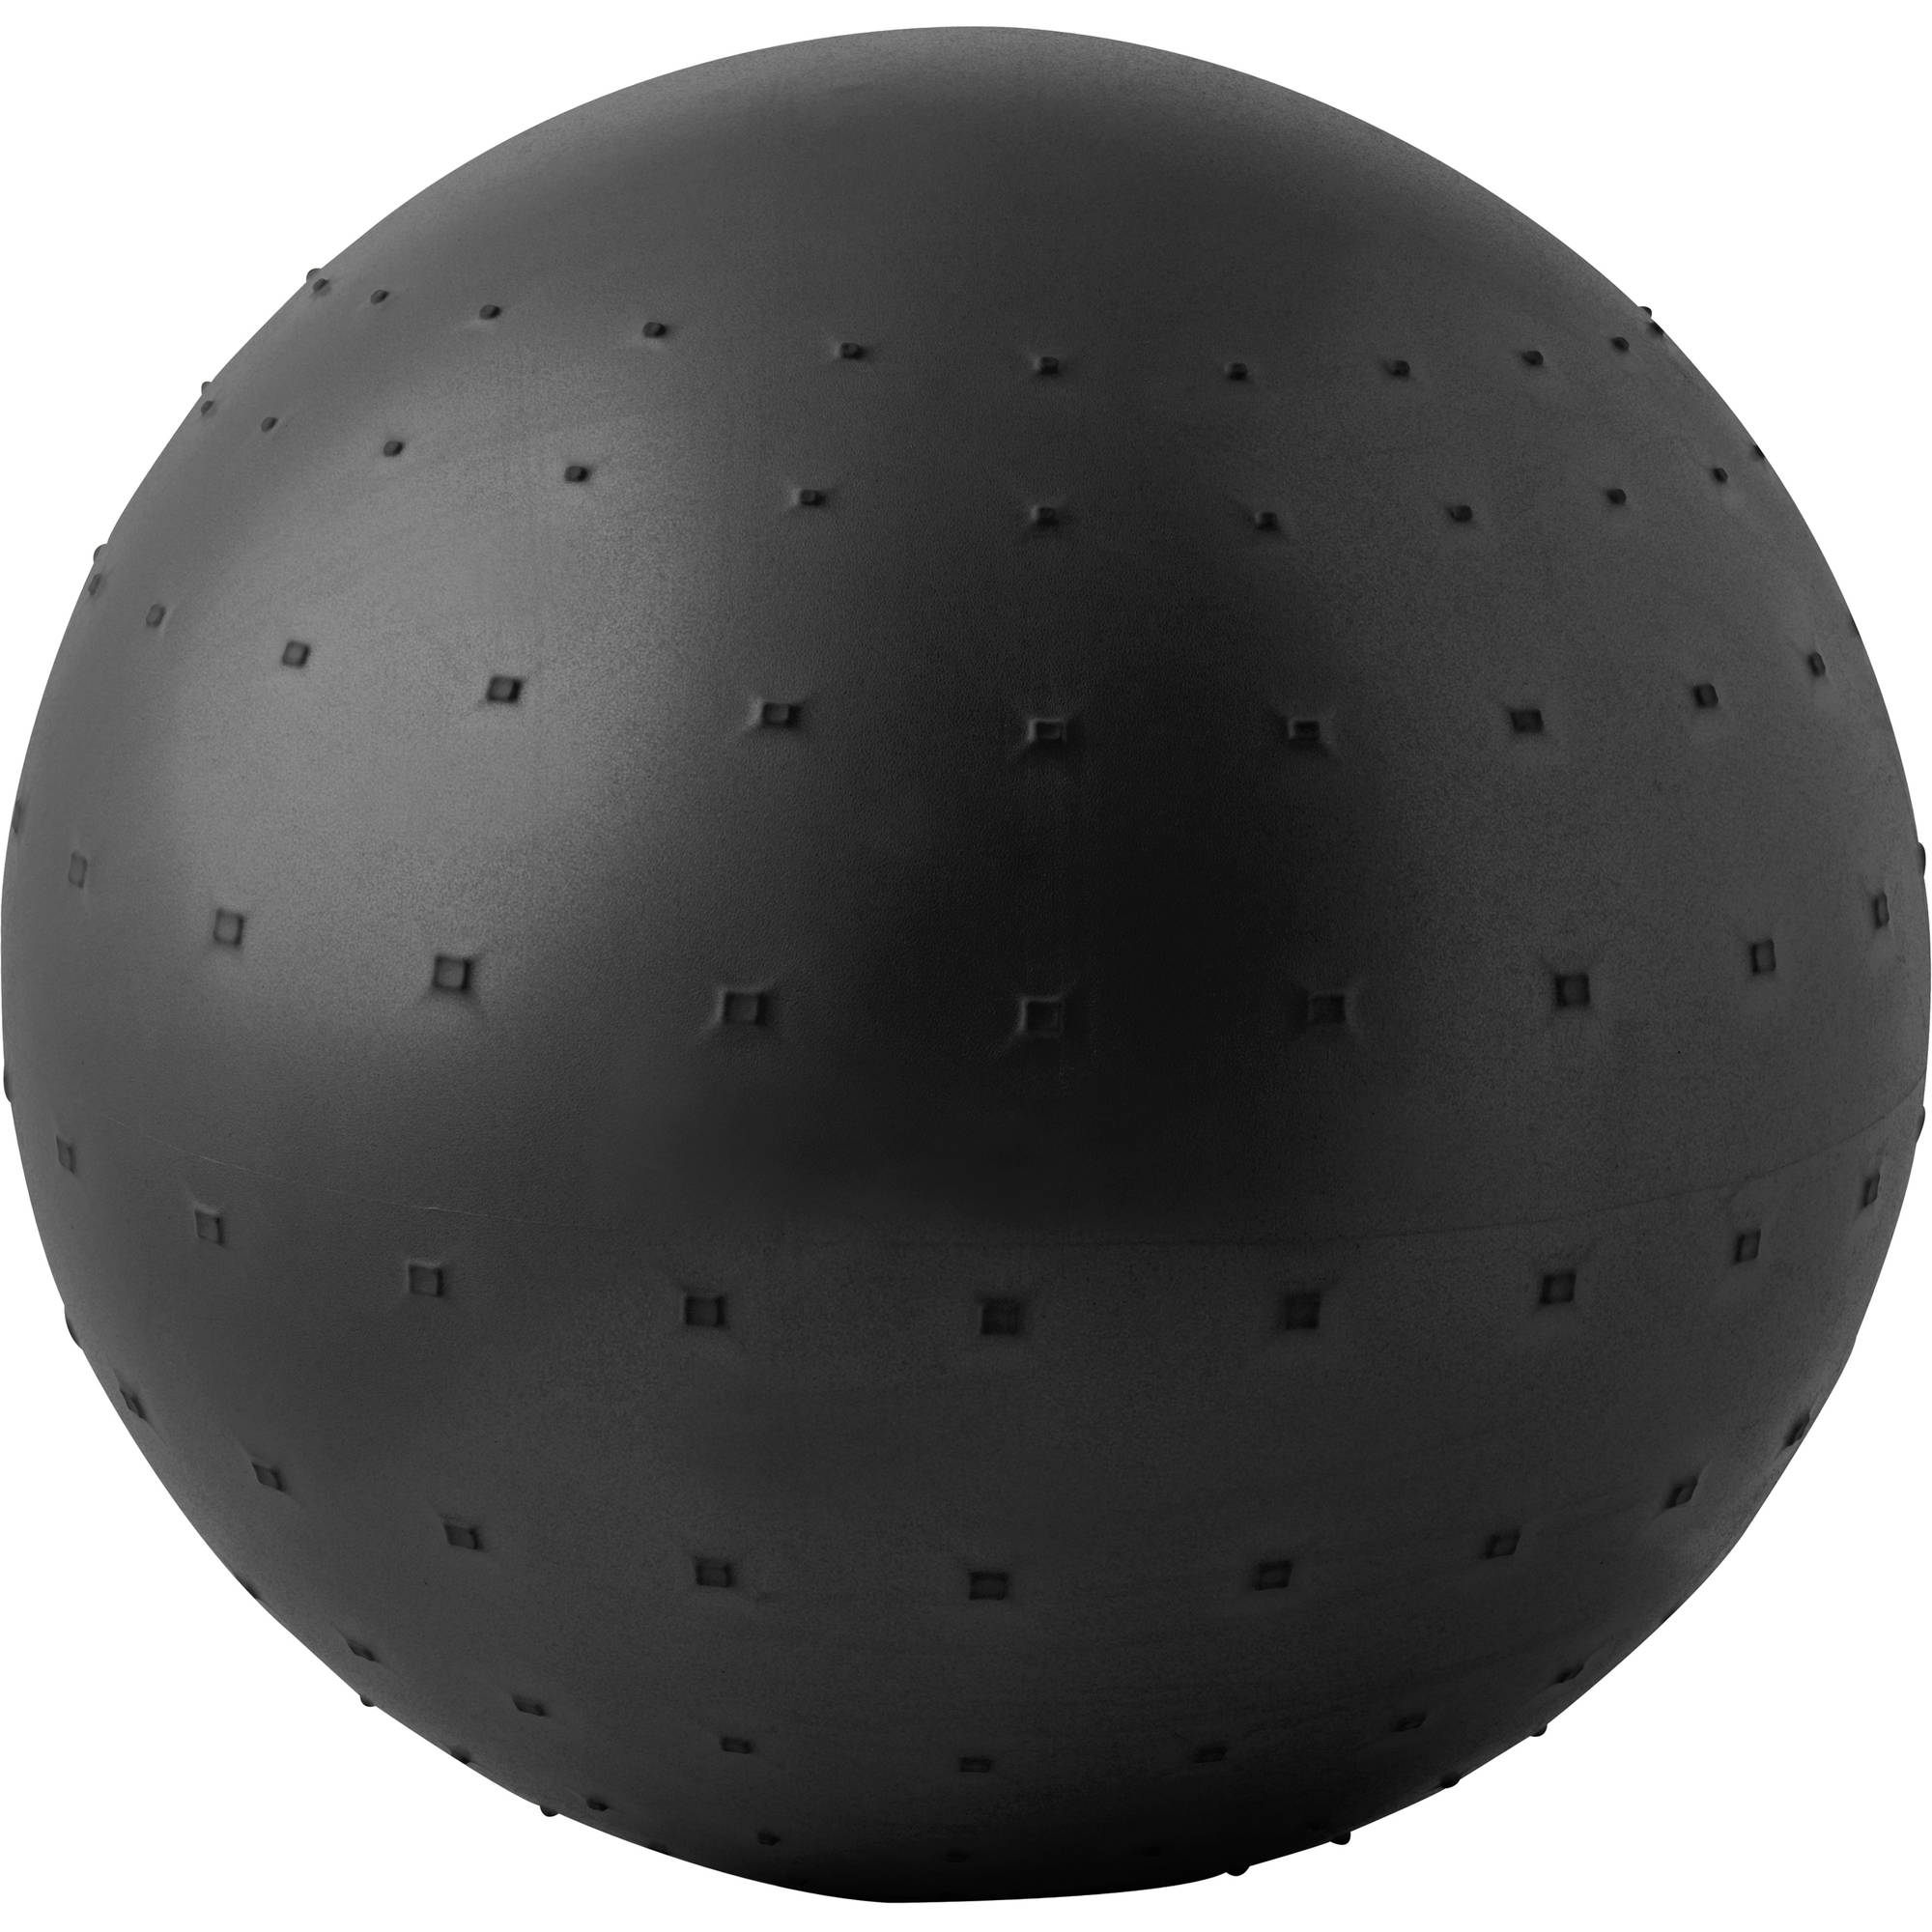 Gold's Gym 75 cm Anti-Burst Performance Ball by Icon Health and Fitness Inc.